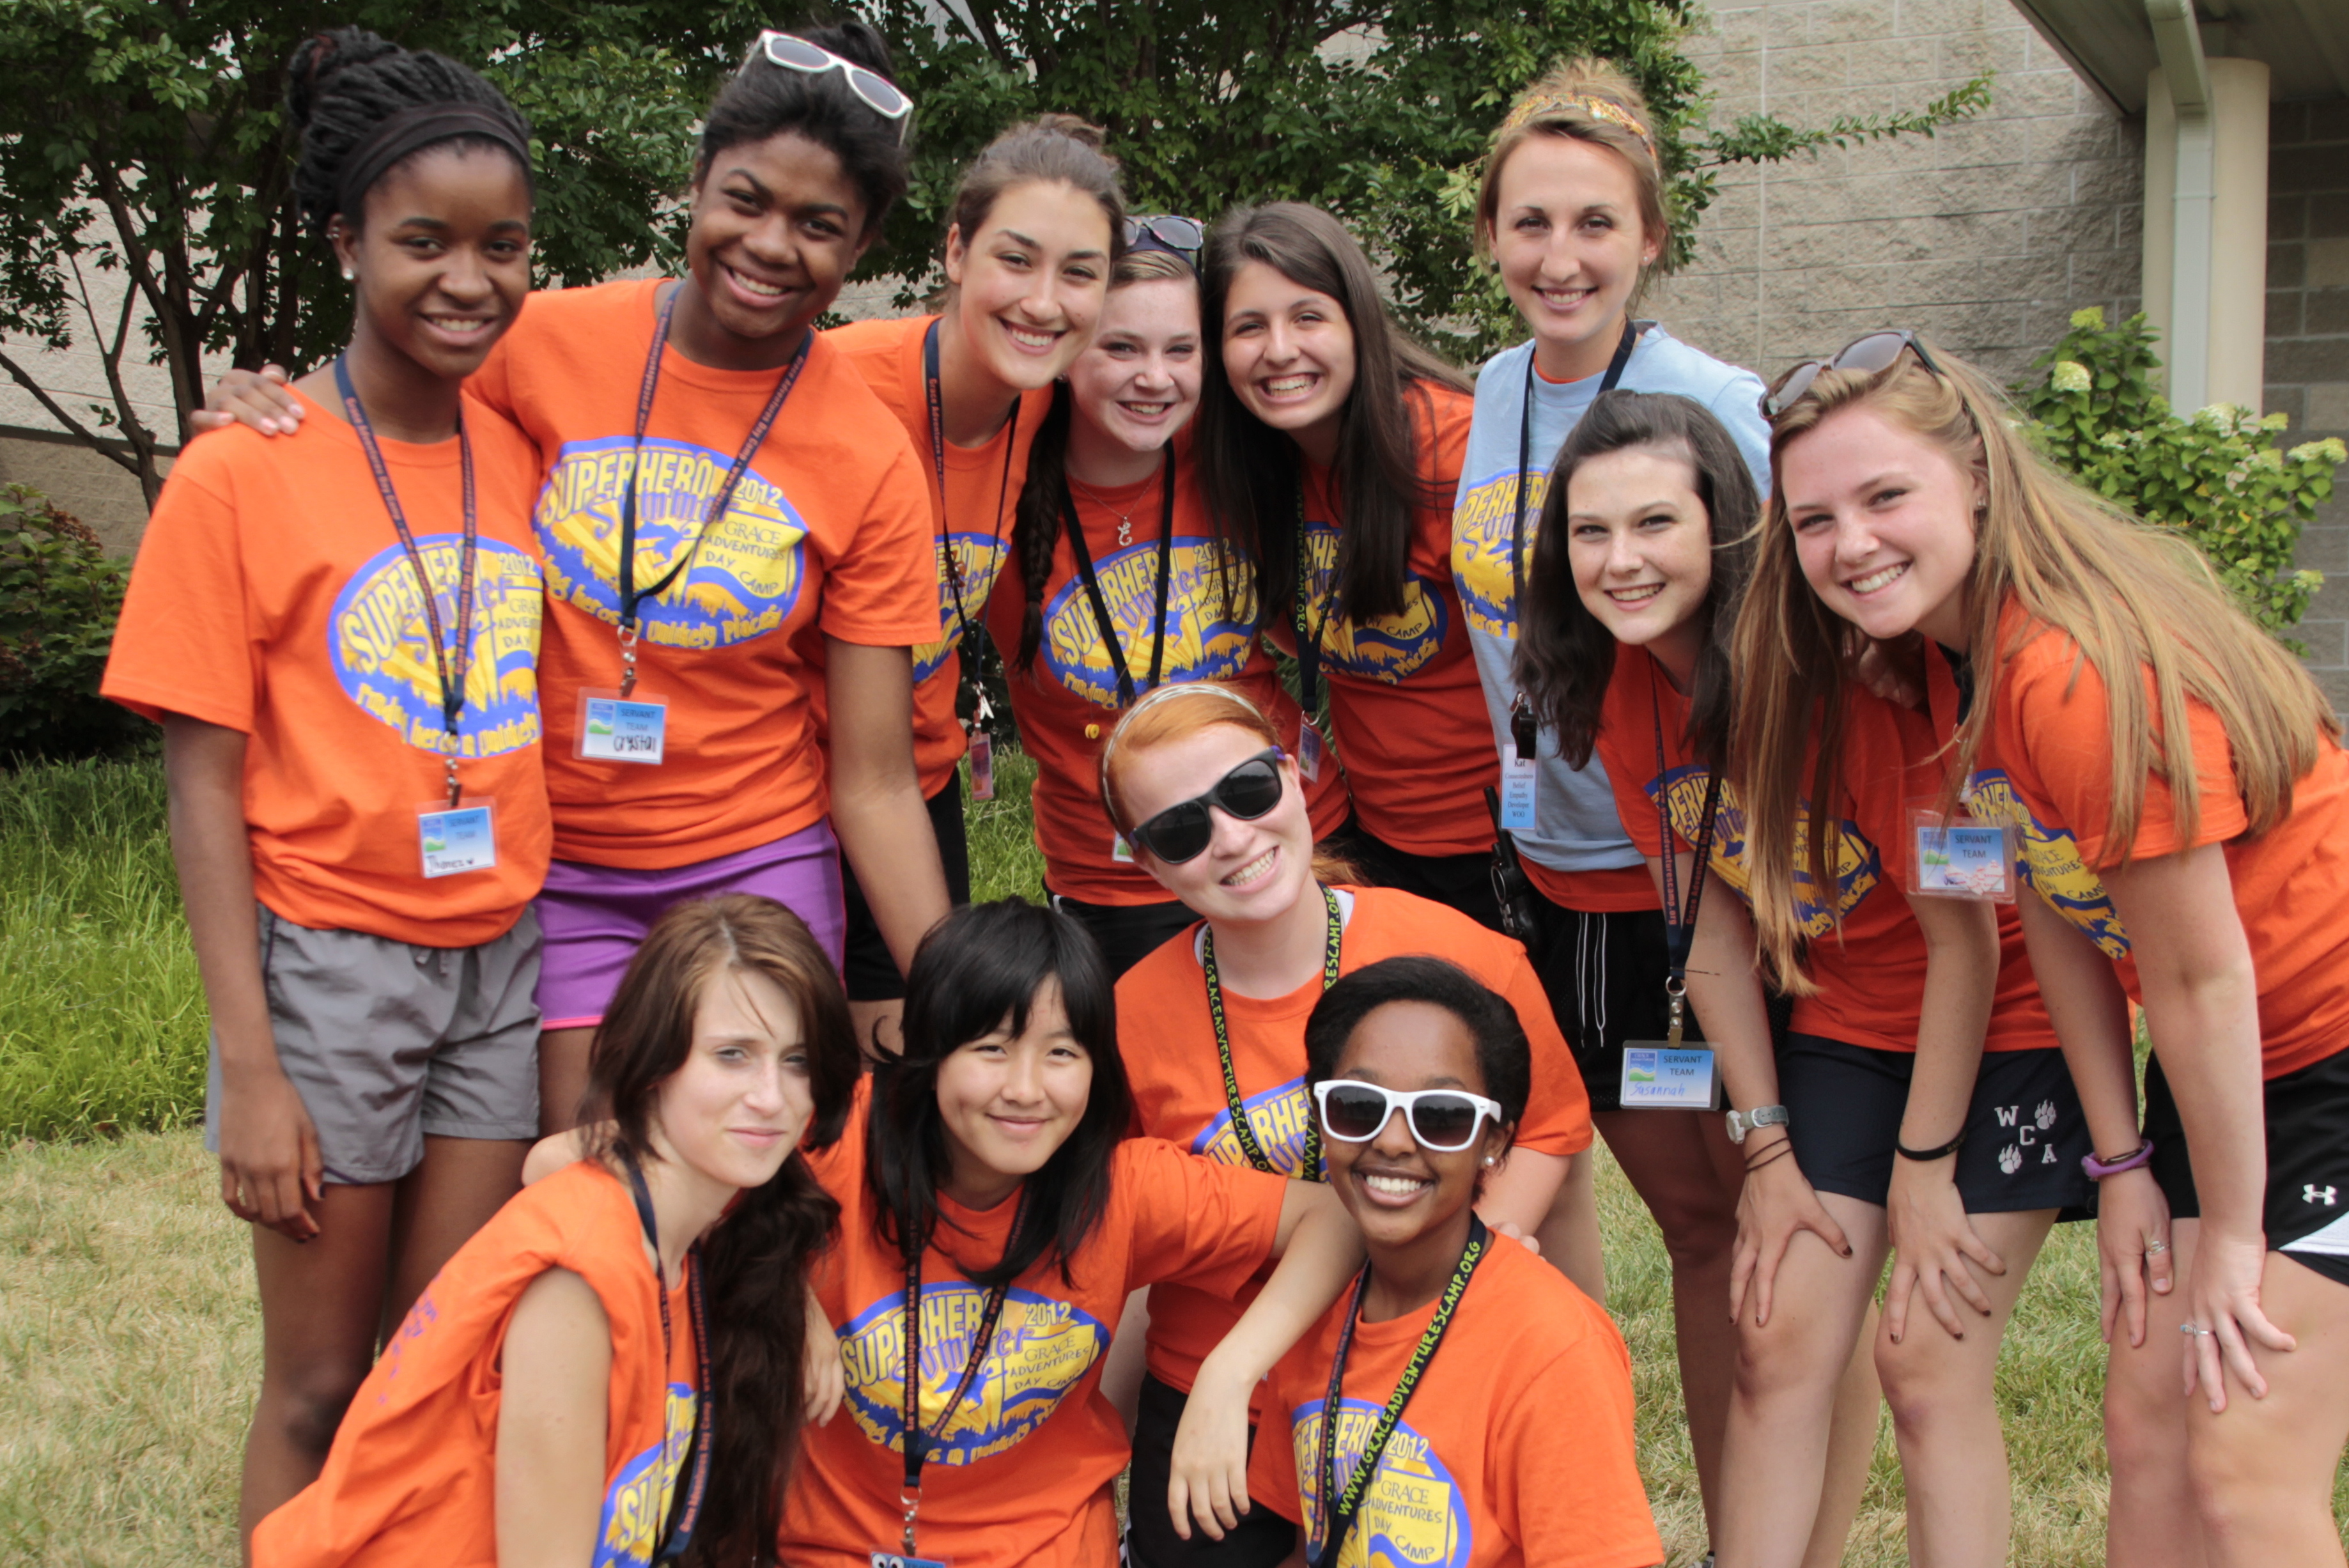 summer camp counselor Best delaware summer camp jobs | our 2018 best delaware summer camp jobs online directory includes information on hundreds of available delaware camp jobs and camp counselor jobs at some of the best day and overnight summer camps in delaware, including: delaware adventure camp jobs, delaware performing arts camp jobs, delaware academic camp.